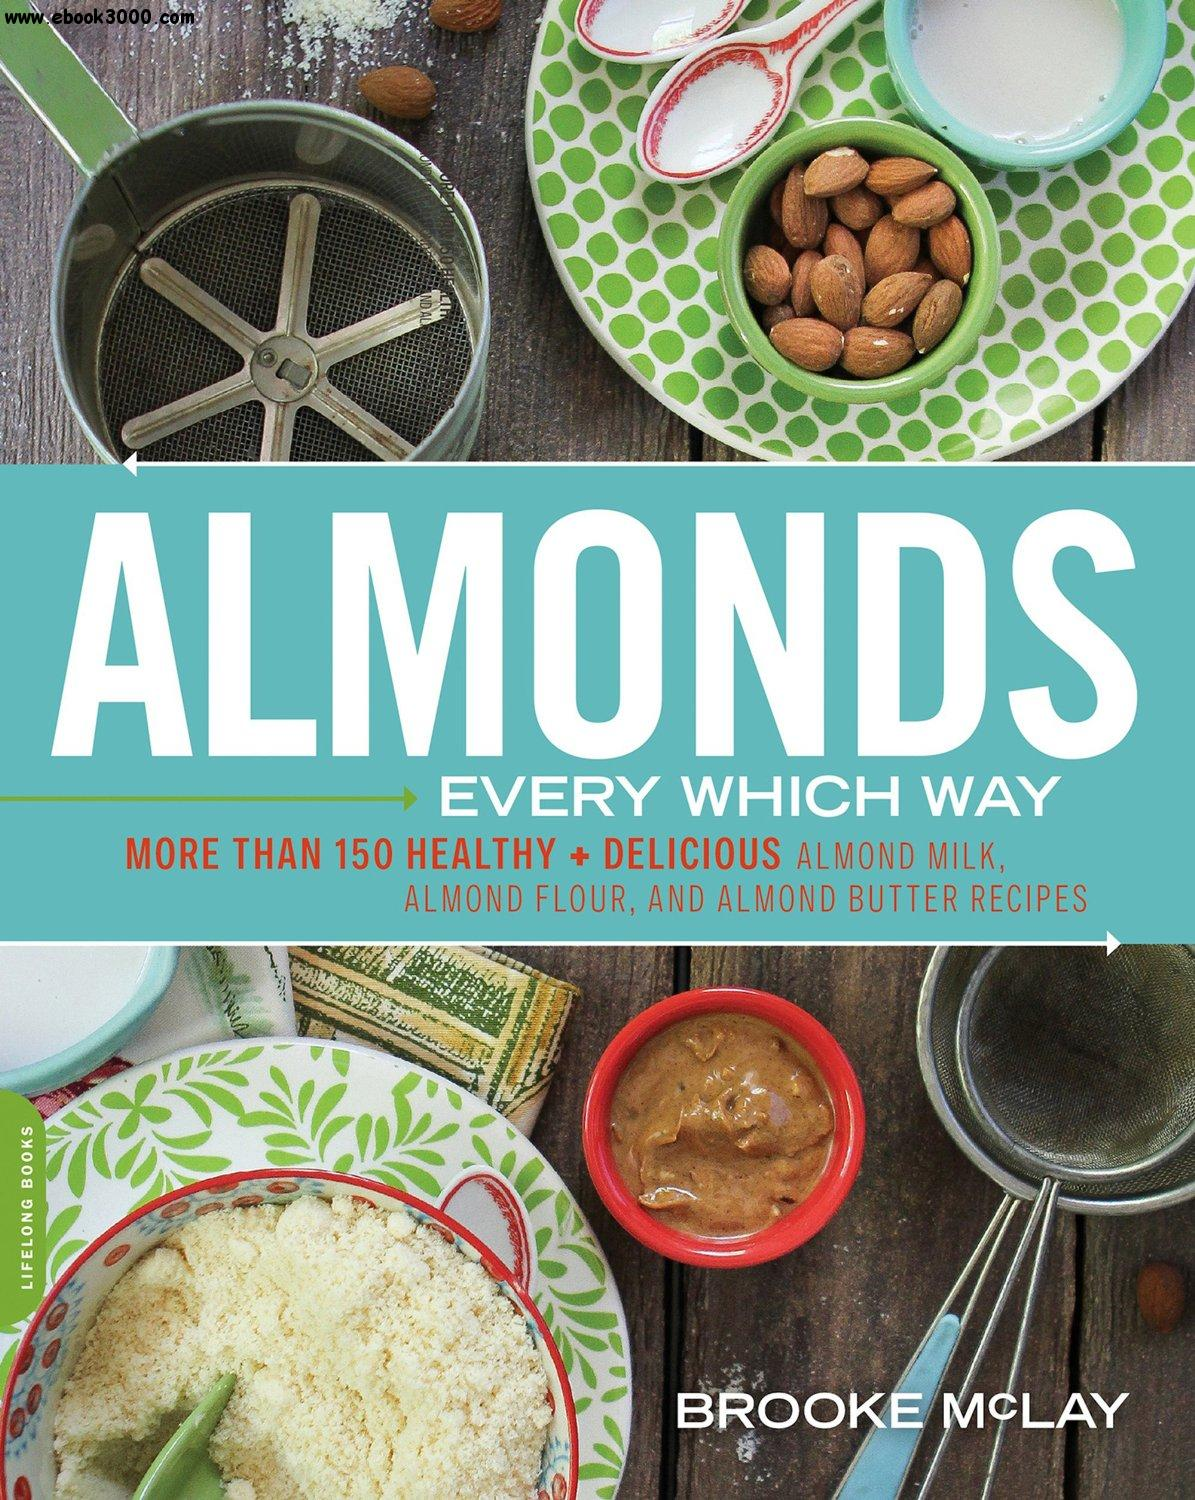 Almonds Every Which Way: More than 150 Healthy & Delicious Almond Milk, Almond Flour, and Almond Butter Recipes free download